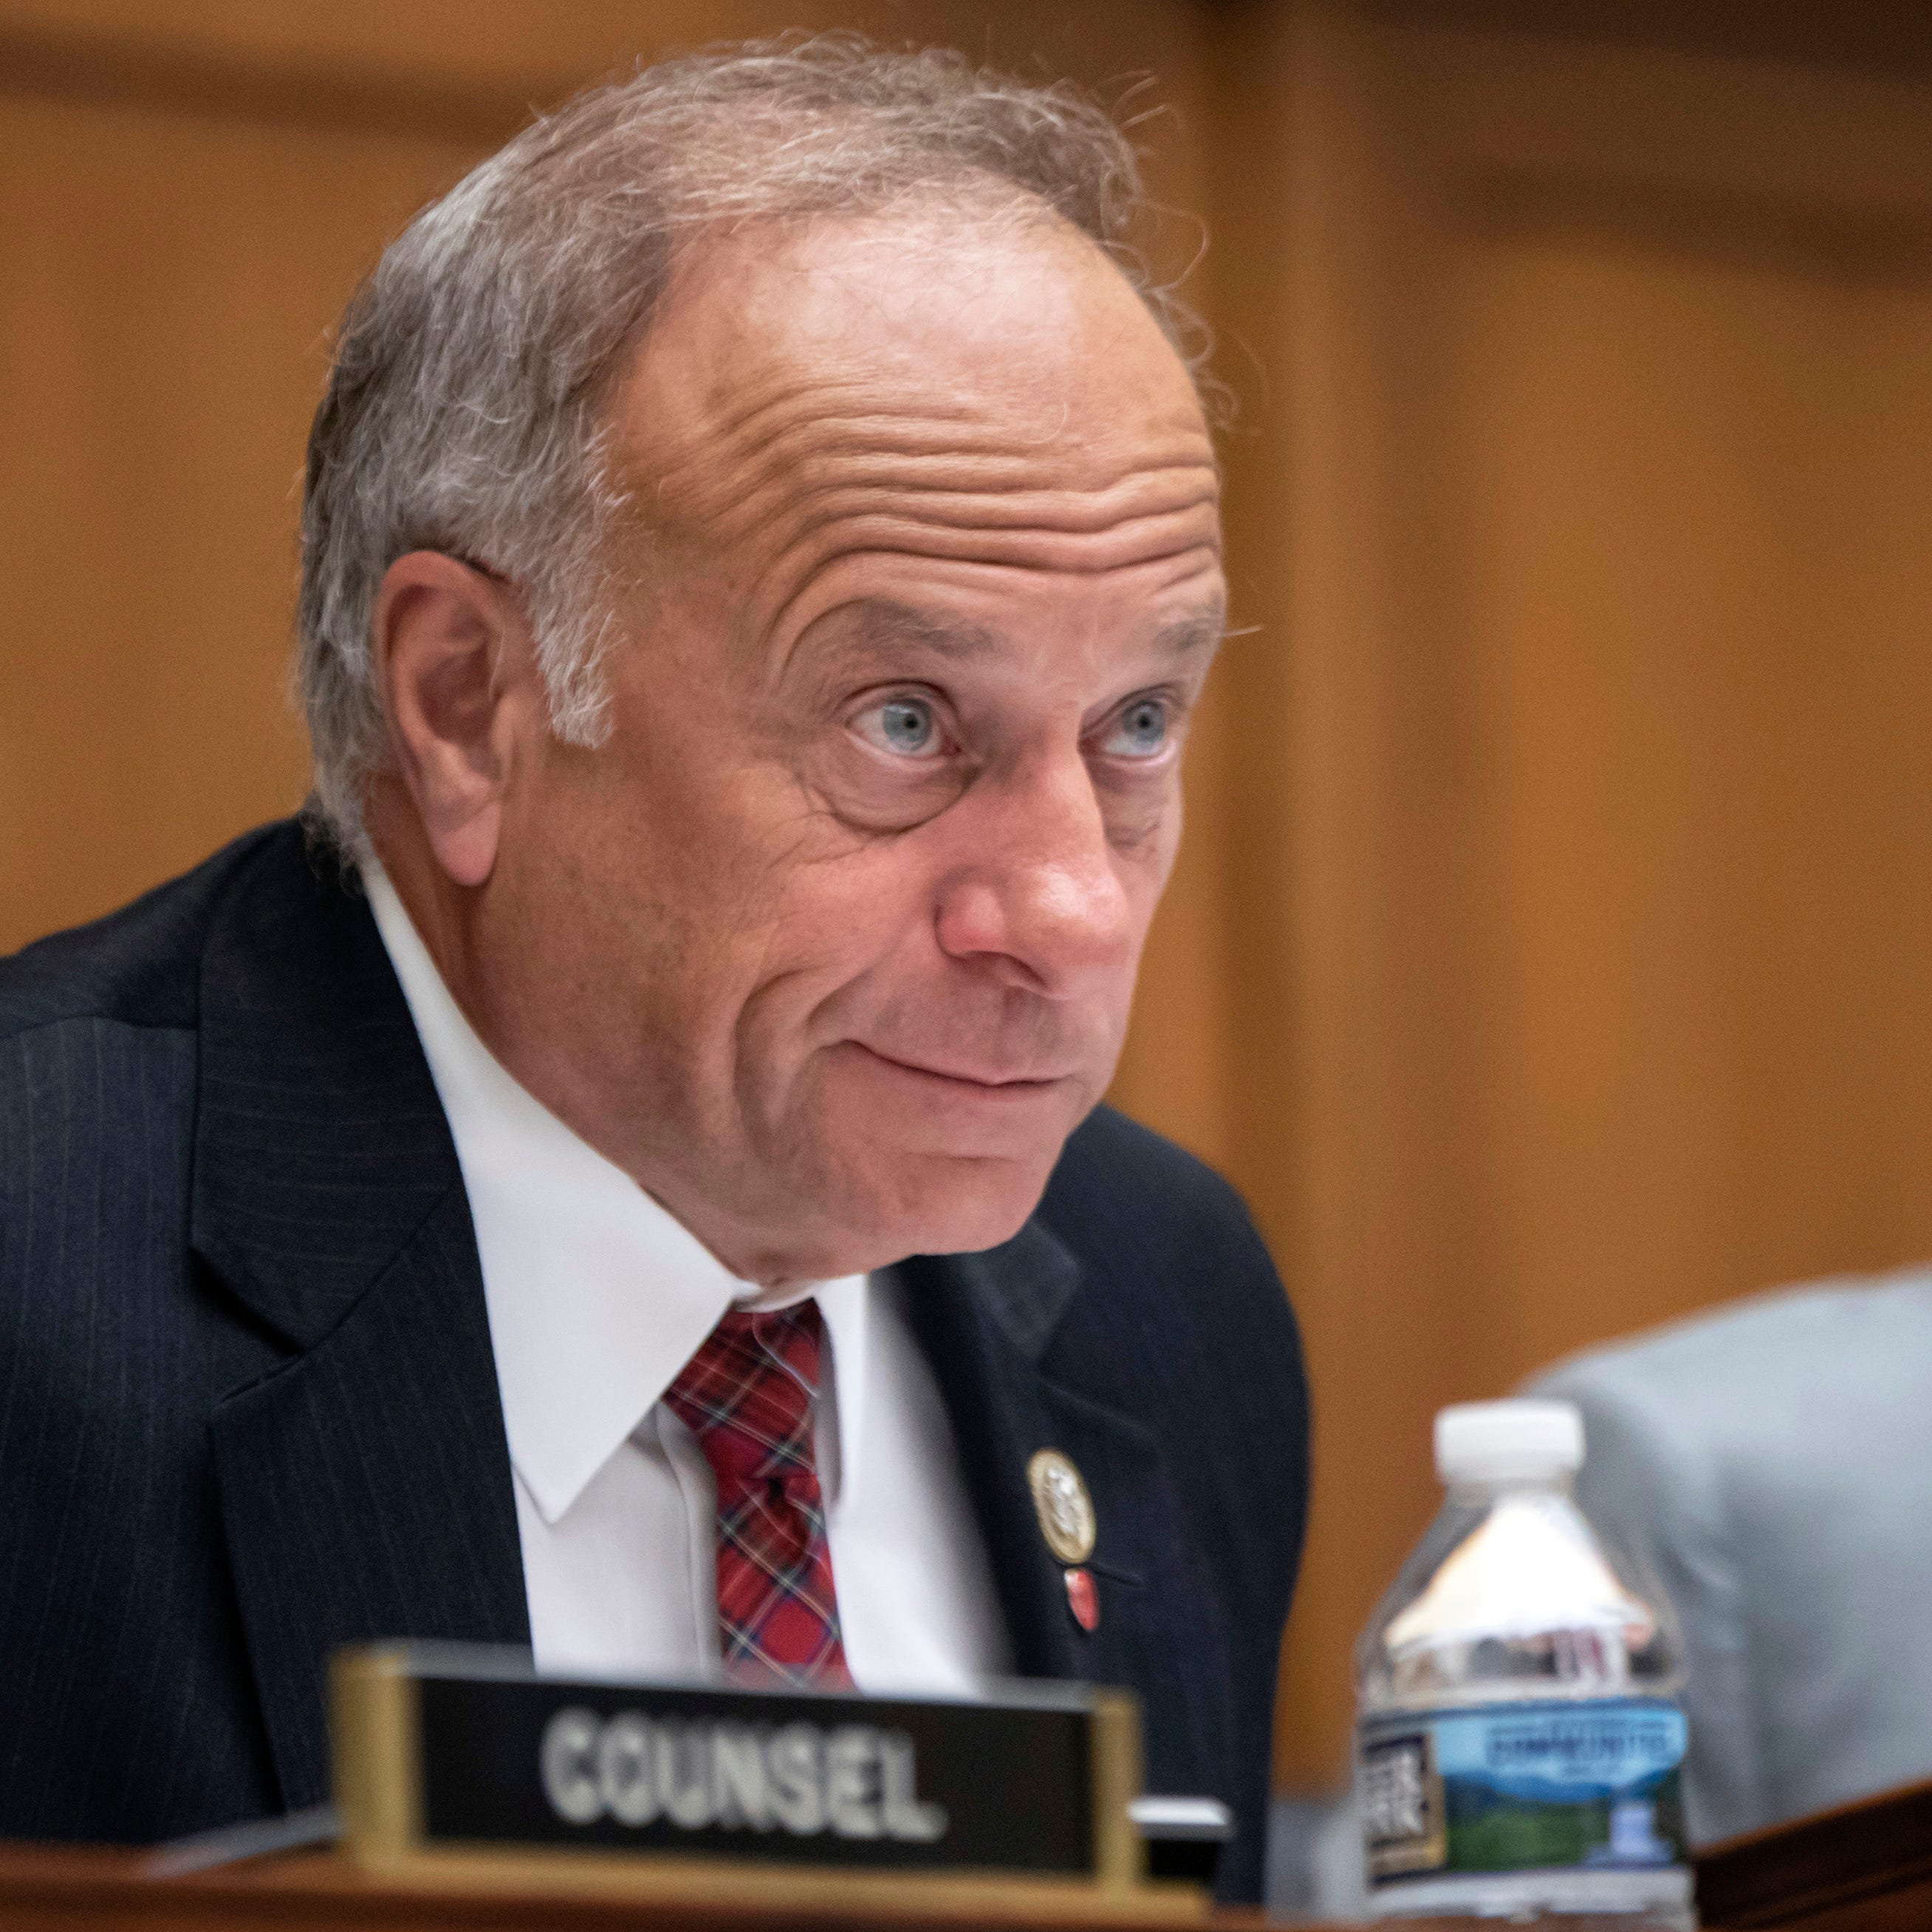 White House denounces Steve King's white supremacy remarks, calling them 'abhorrent'